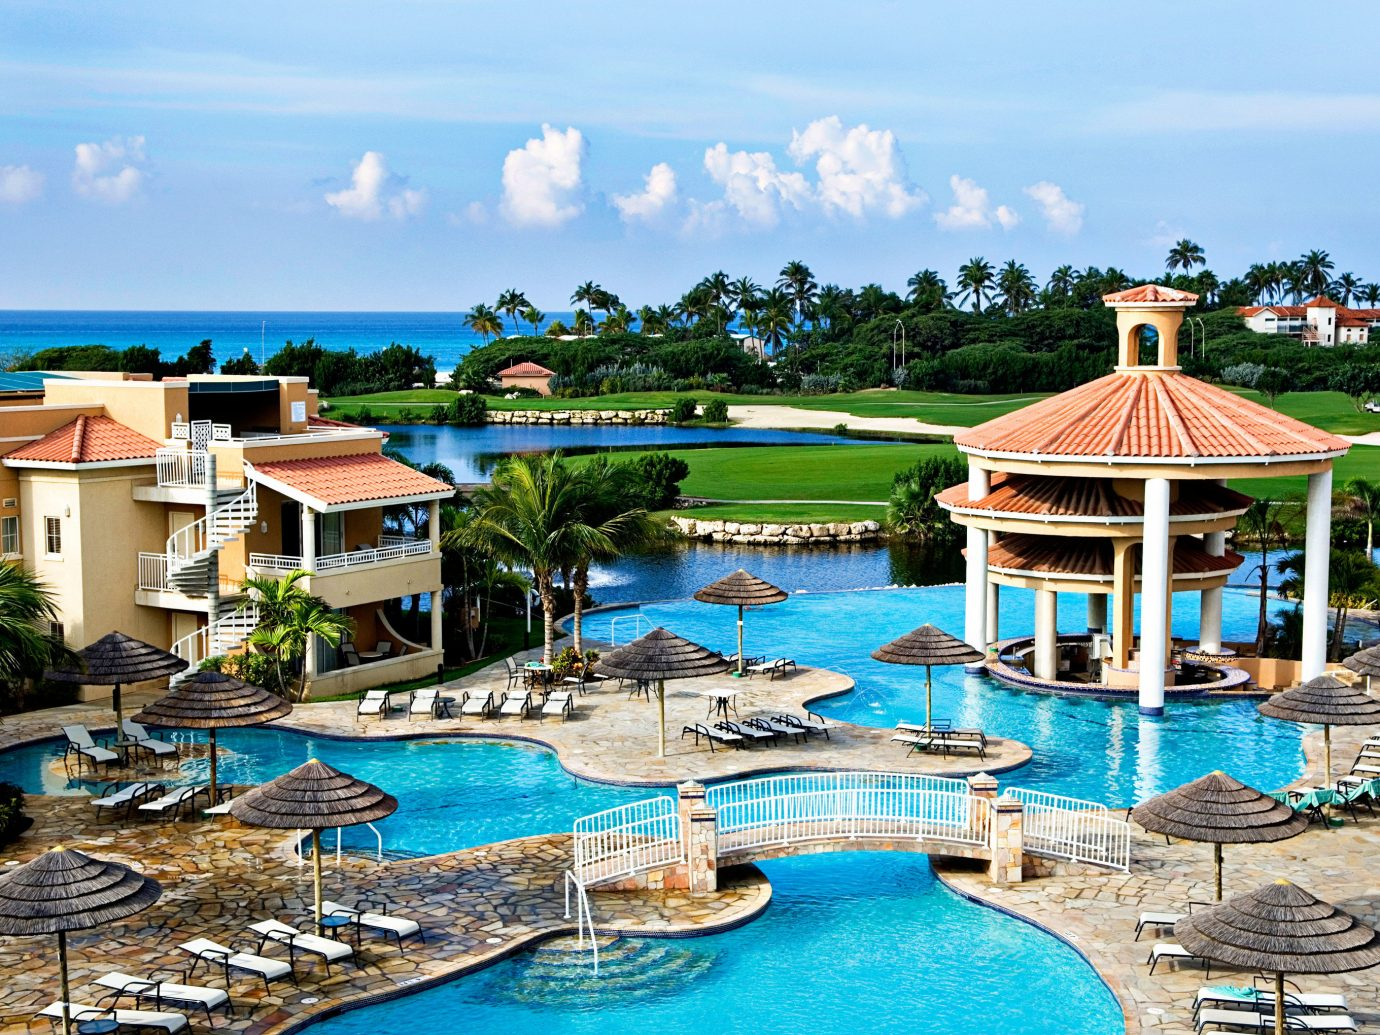 Hotels sky outdoor leisure chair Resort geographical feature swimming pool property vacation estate Harbor Beach resort town Sea caribbean Water park bay Village Lagoon amusement park blue set several Island